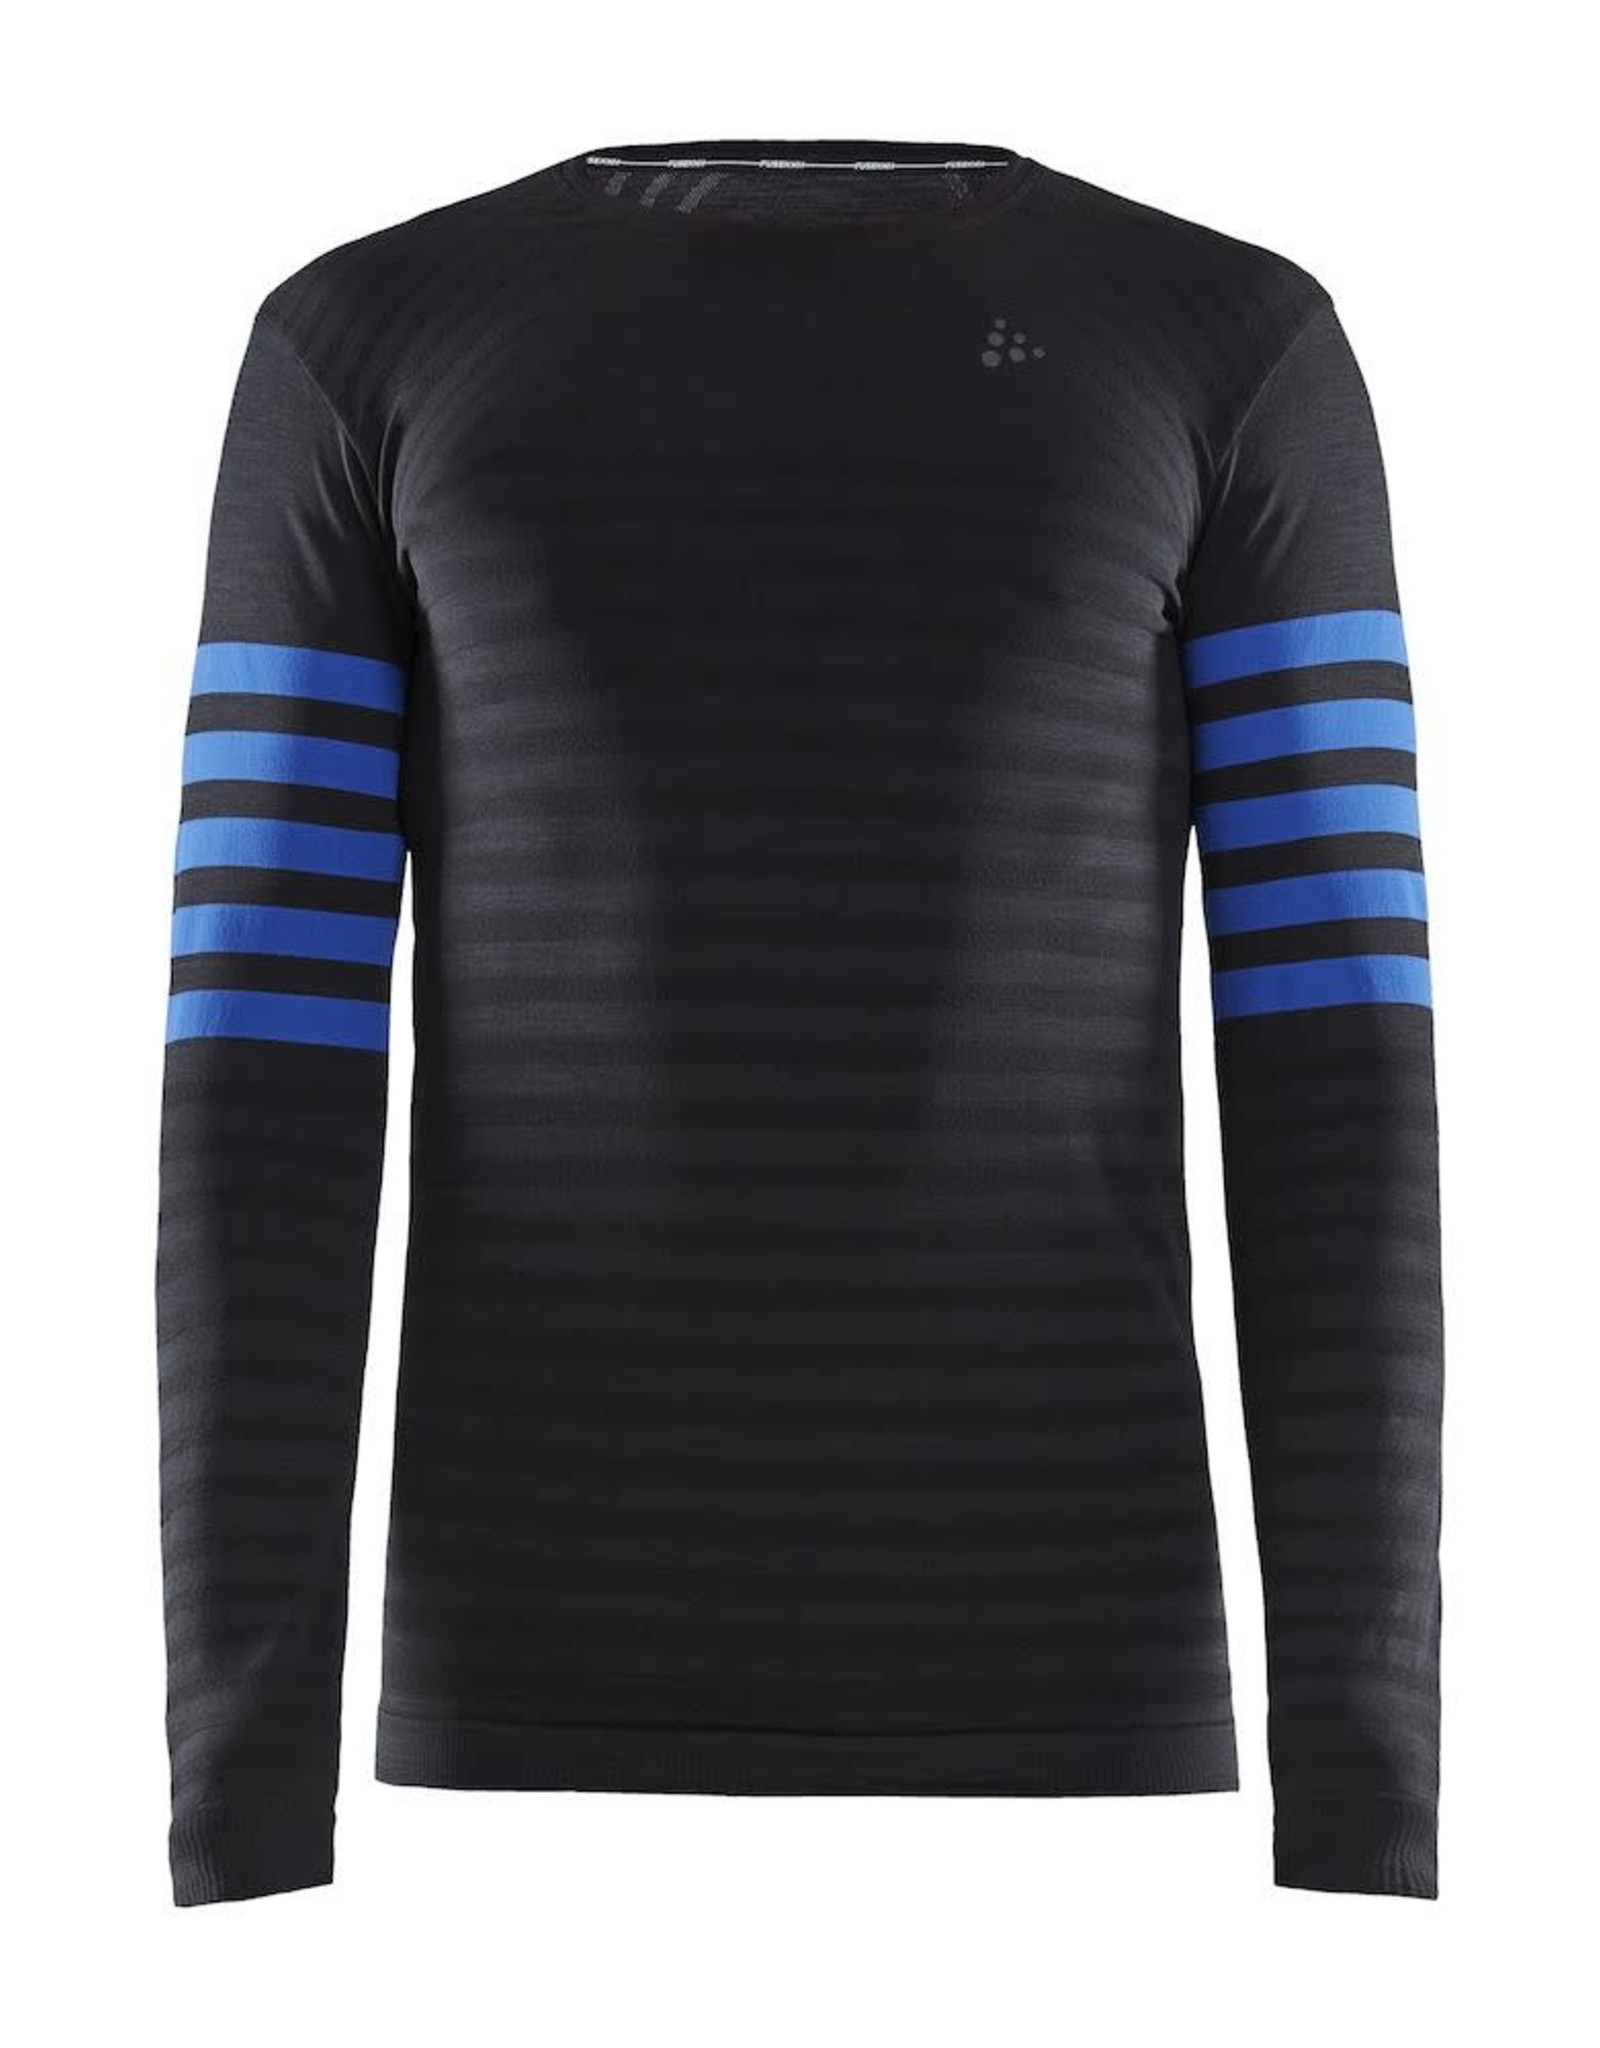 Craft Craft Fuseknit Comfort Blocked RN LS Baselayer Men's